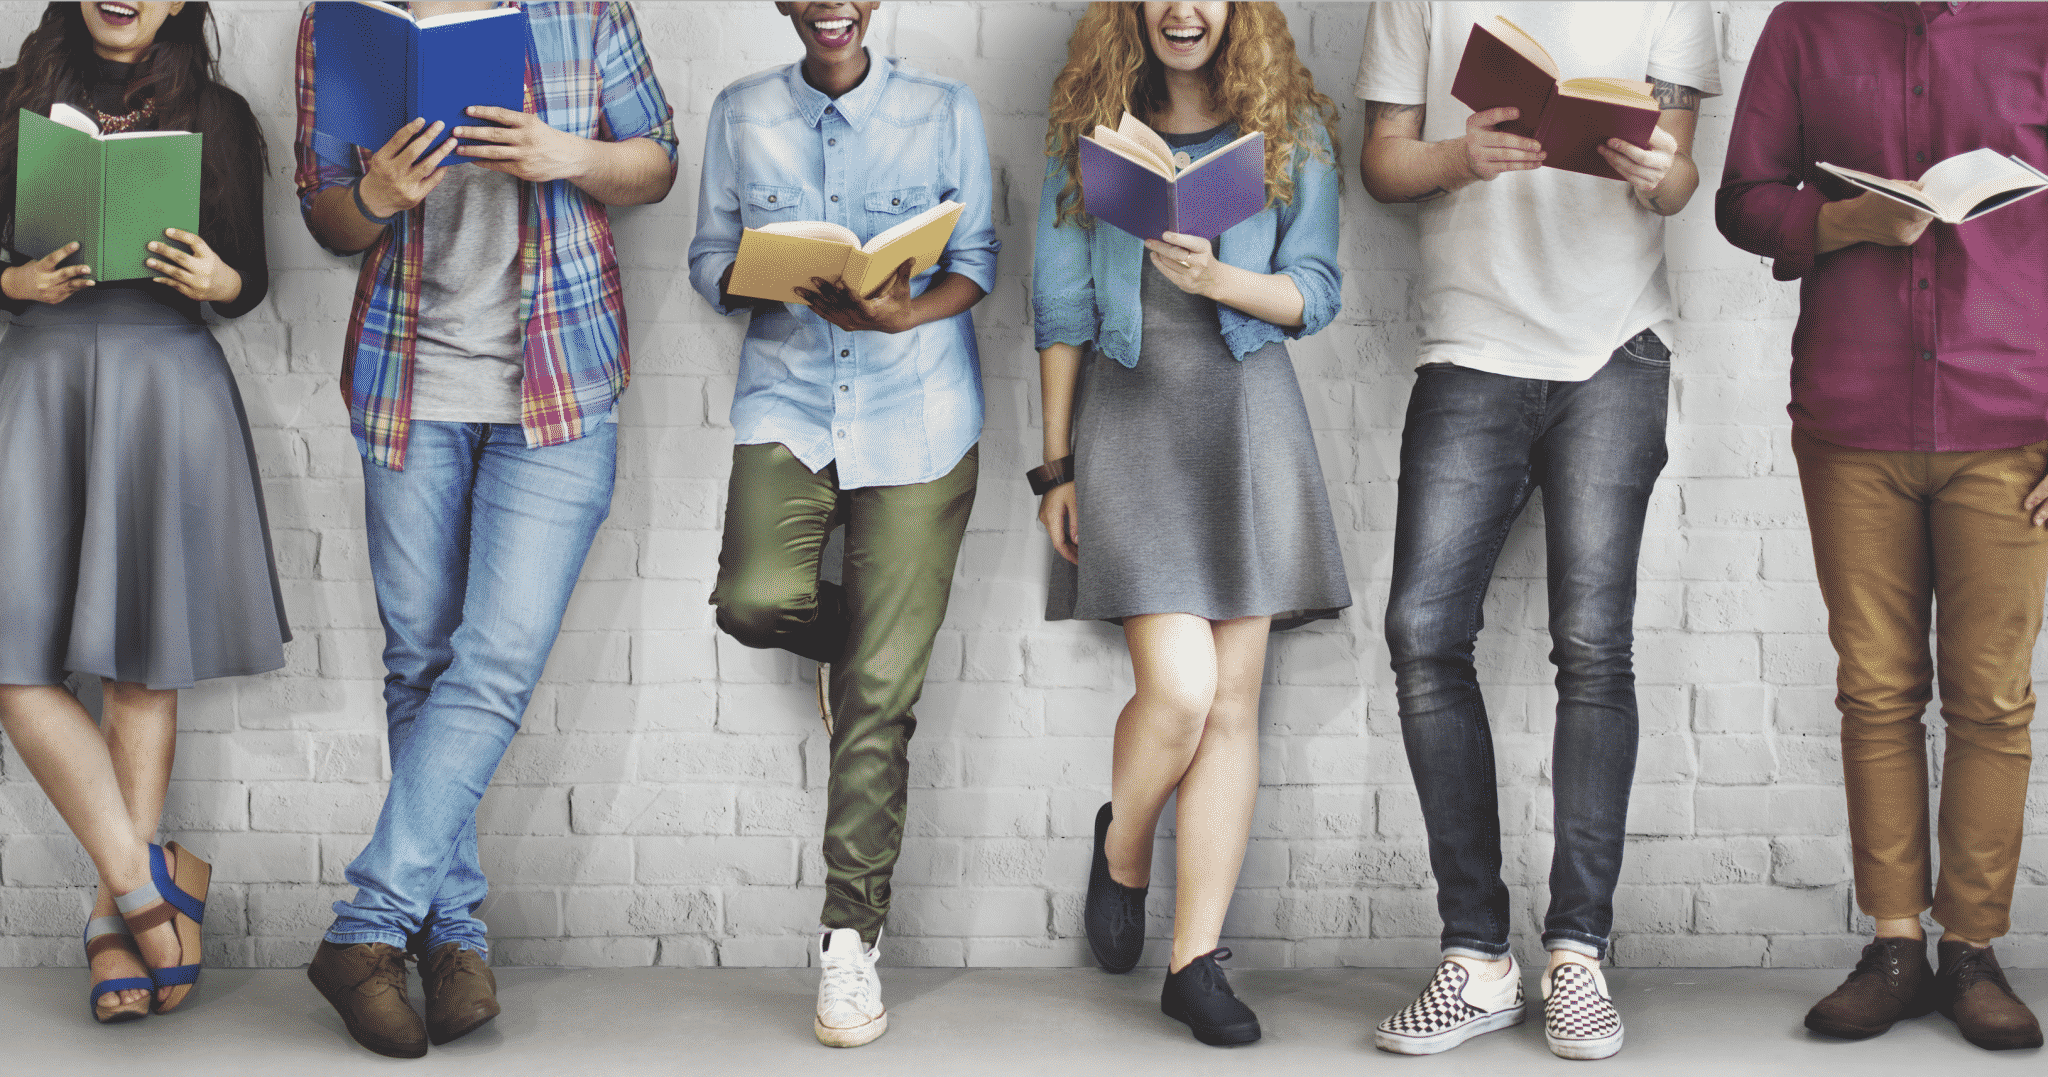 Bunch of students standing against a wall reading